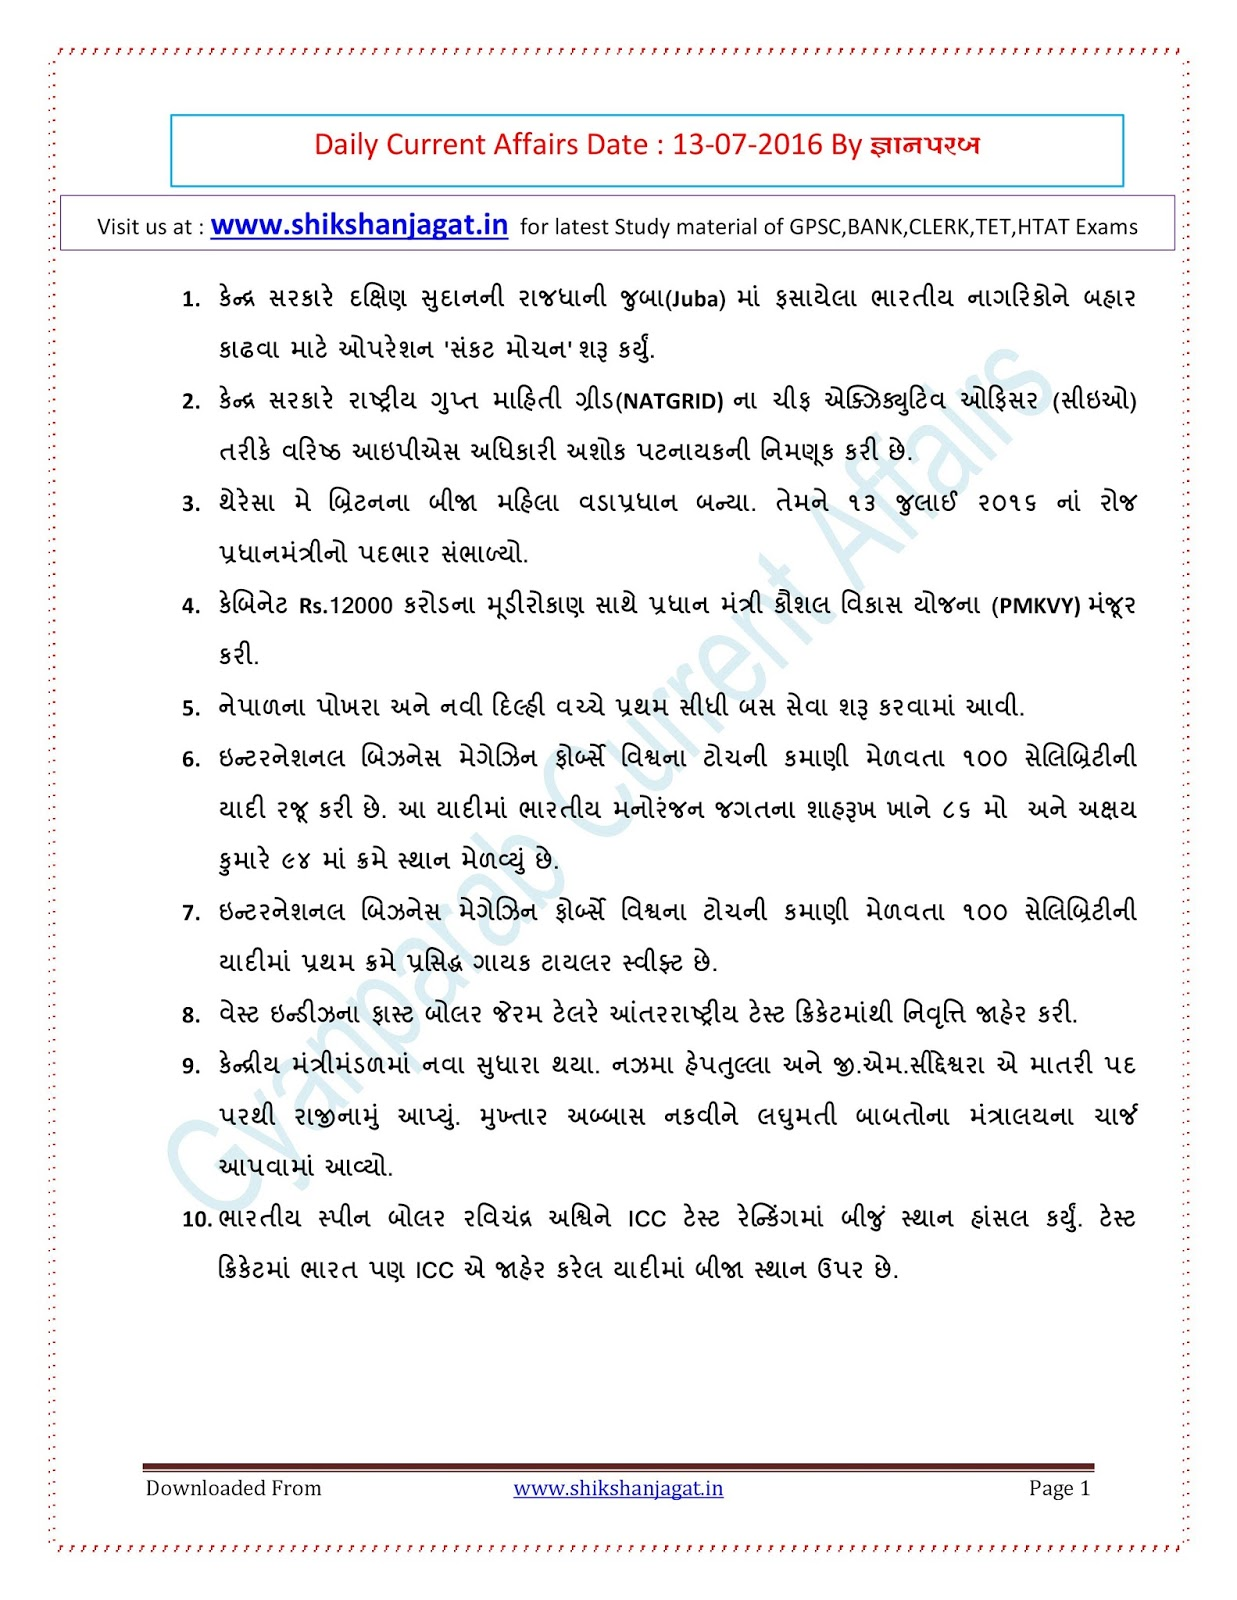 0001 Job Application Form In Gujarati on job openings, contact form, job payment receipt, job applications you can print, agreement form, job opportunity, job search, job vacancy, employee benefits form, job resume, job requirements, job advertisement, job letter, job applications online, cover letter form, cv form,